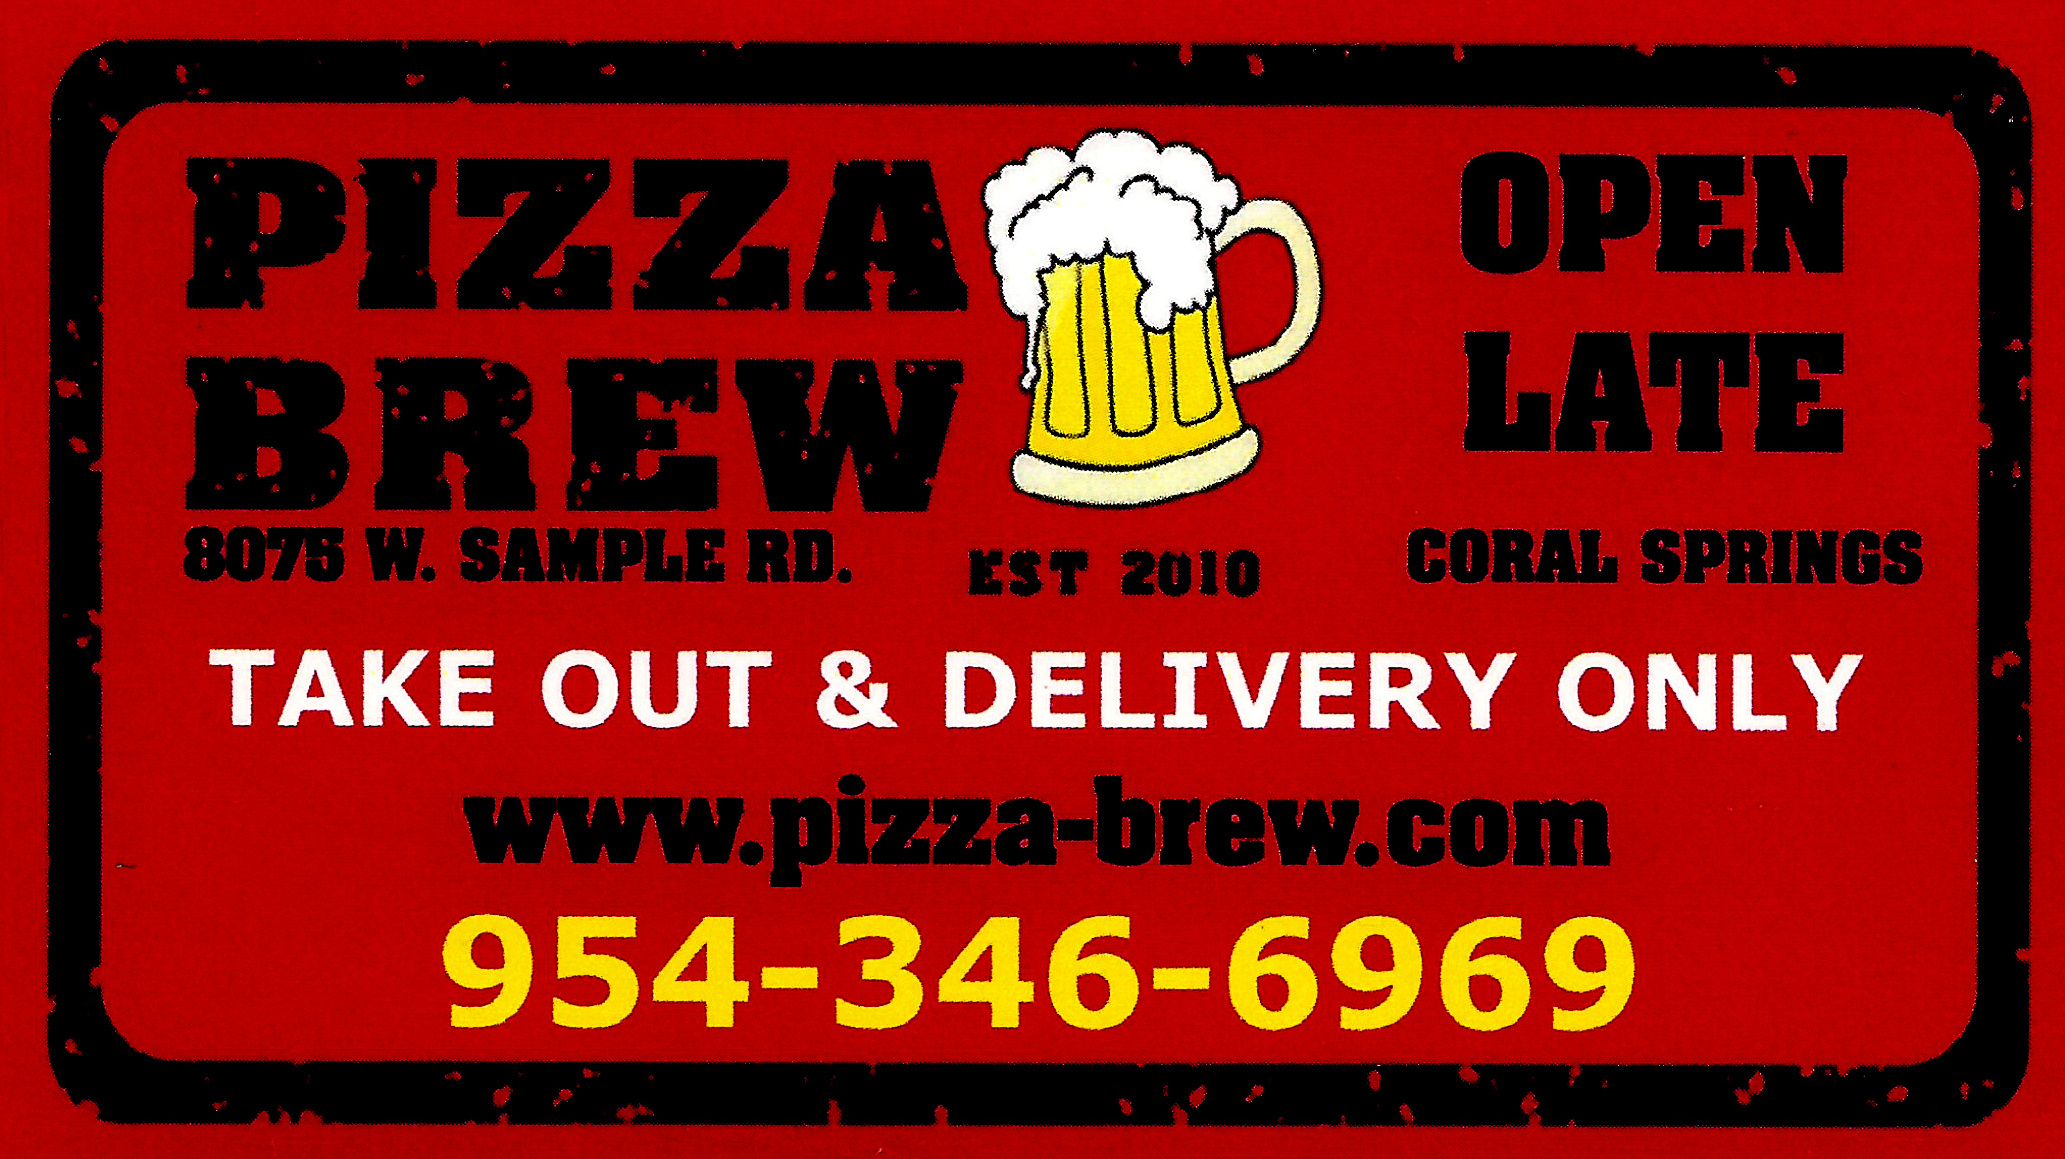 pizza brew